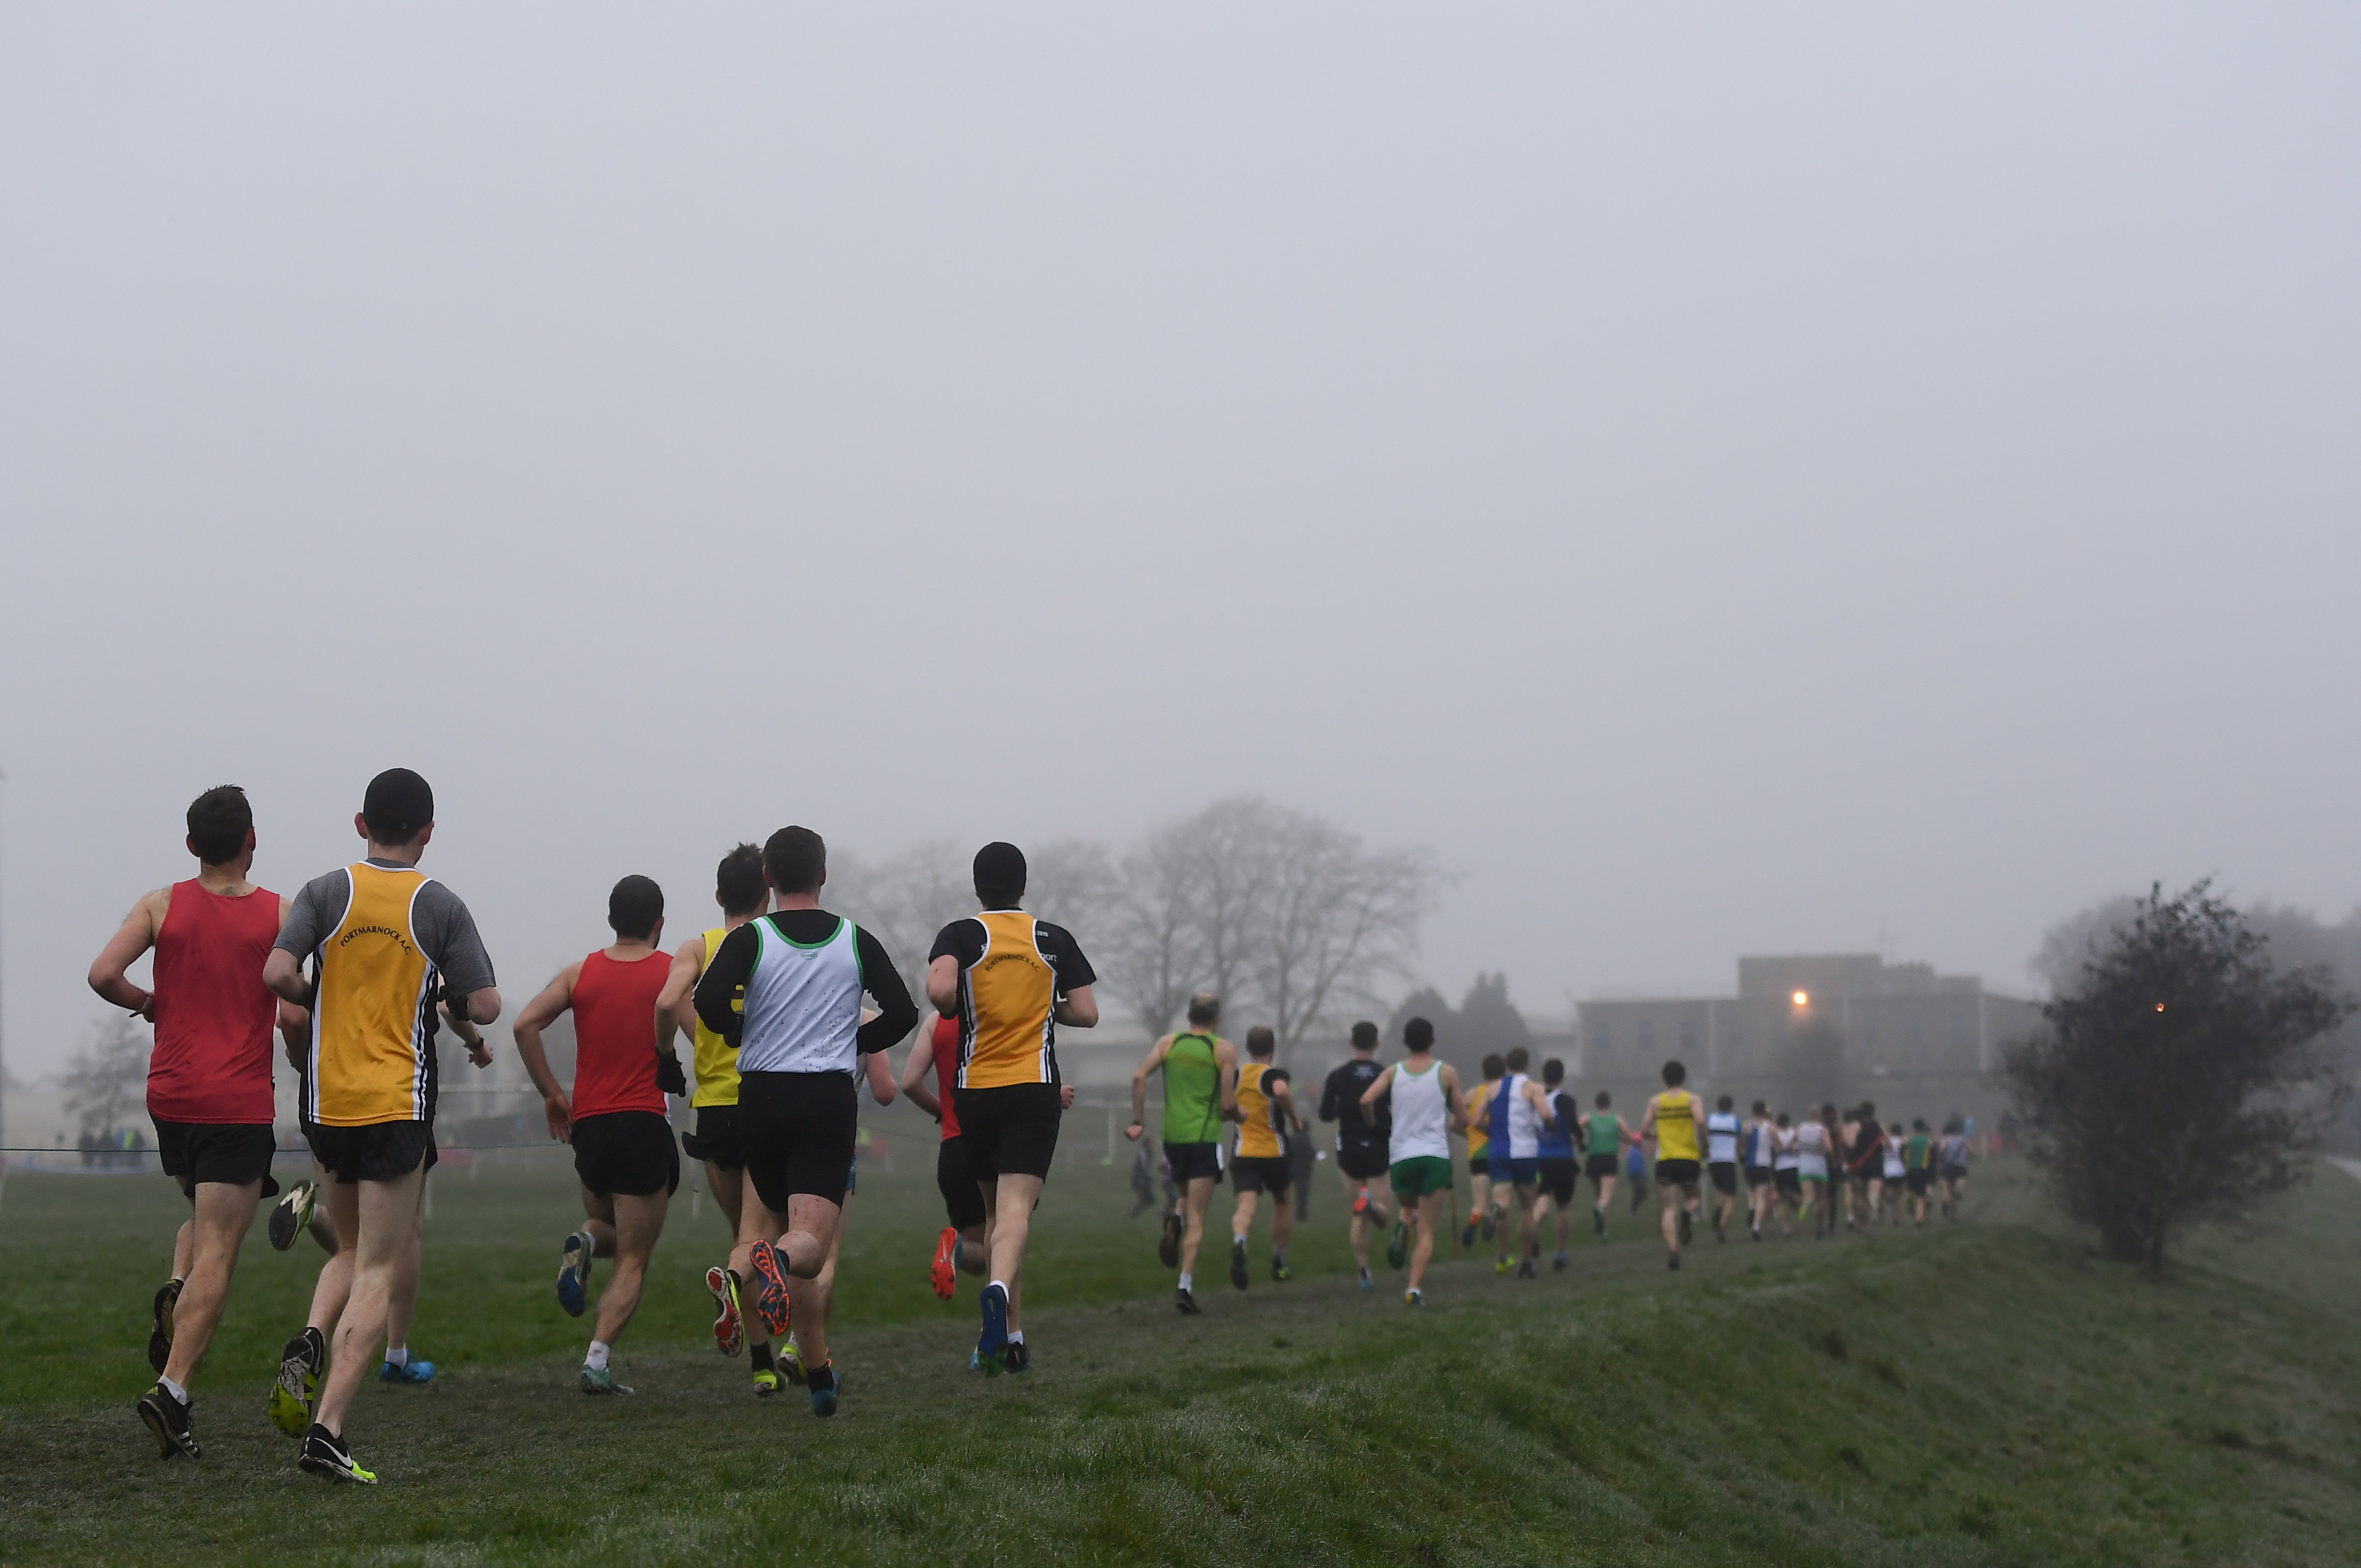 Application for regrading for the cross country season 2019-2020